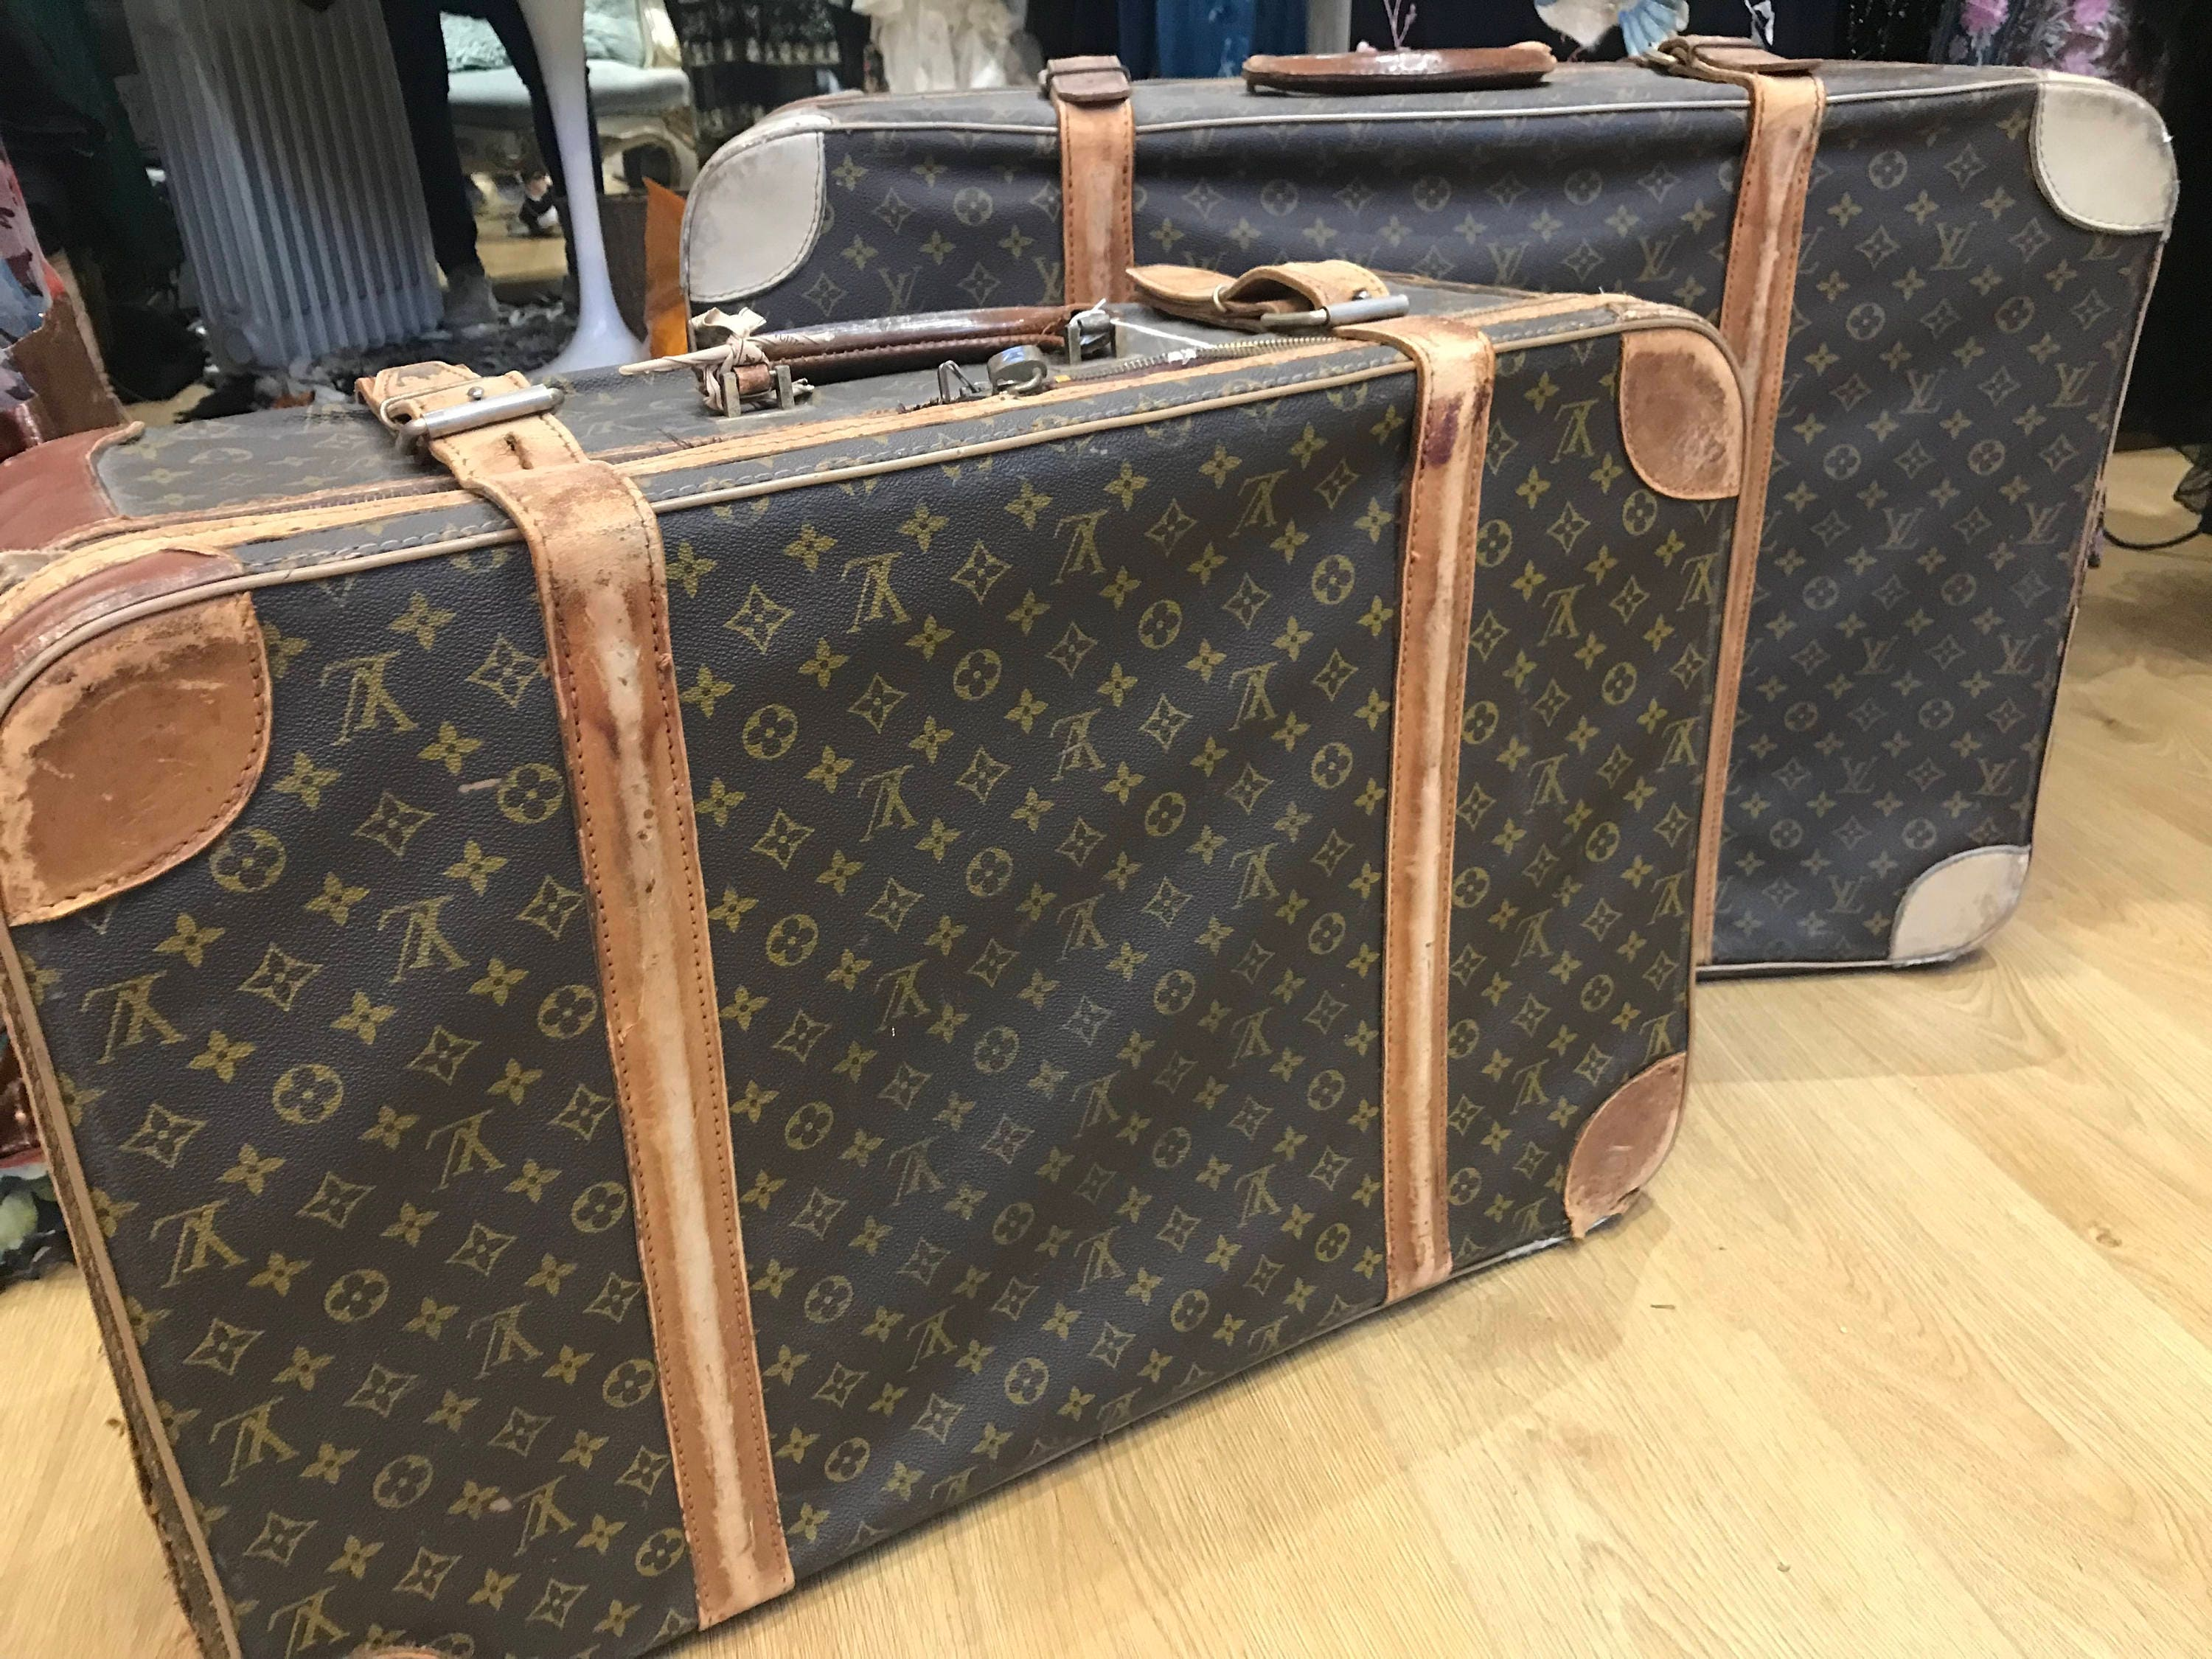 Loui Vuitton Koffer